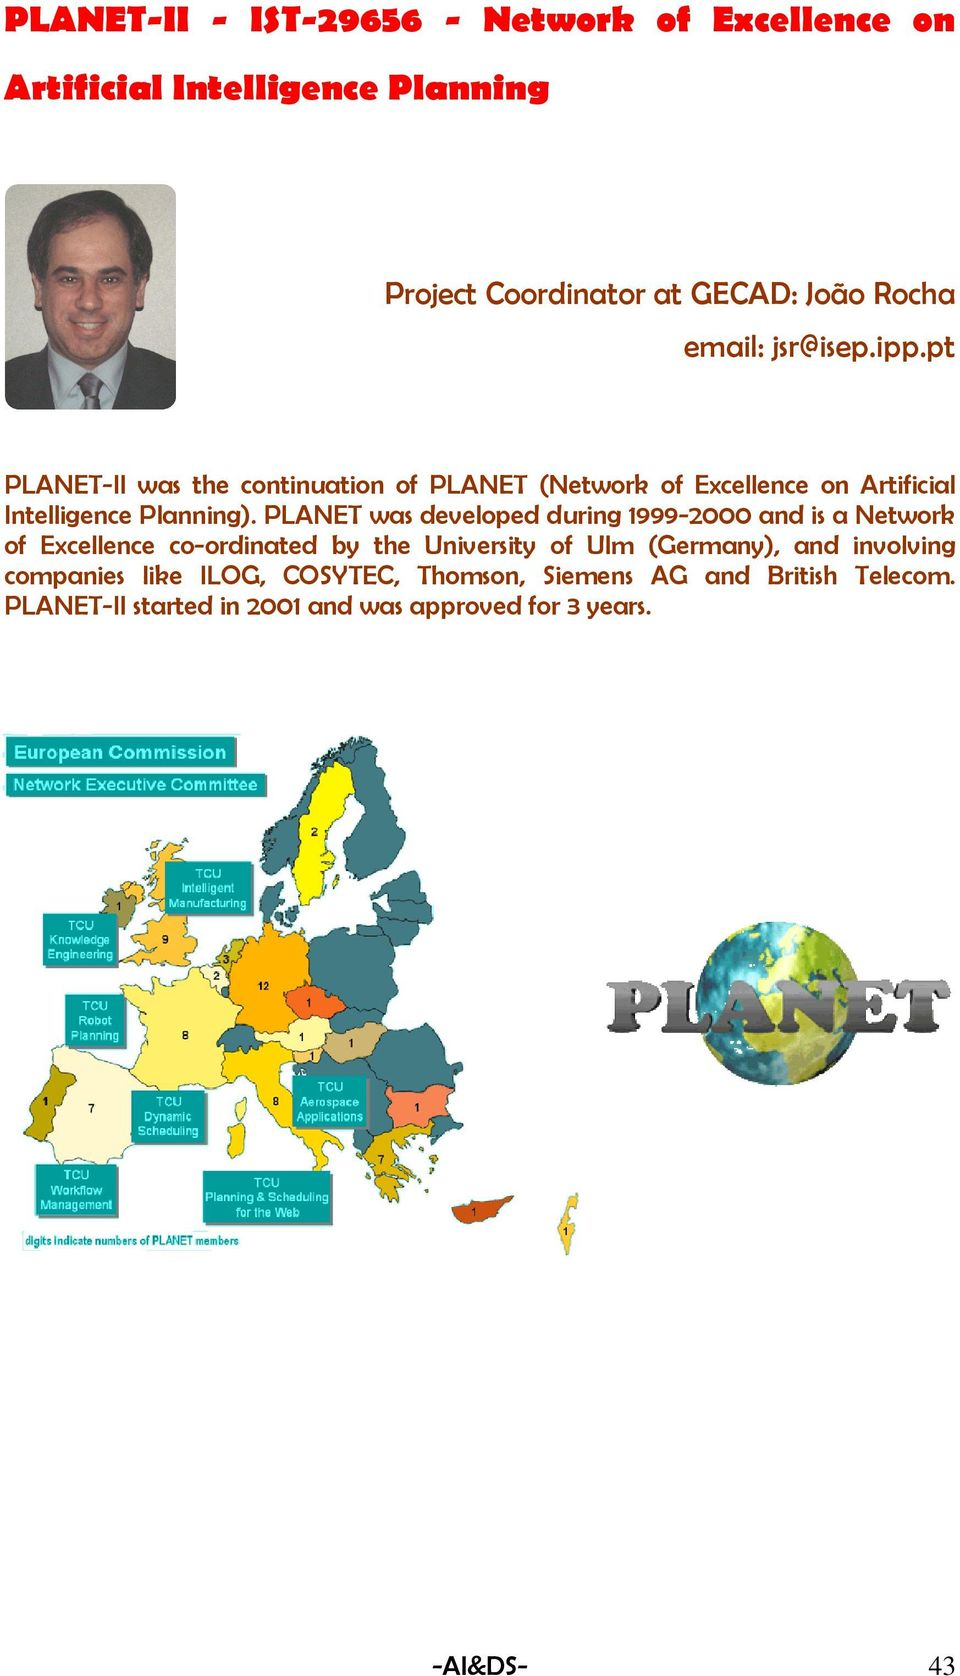 PLANET was developed during 1999-2000 and is a Network of Excellence co-ordinated by the University of Ulm (Germany), and